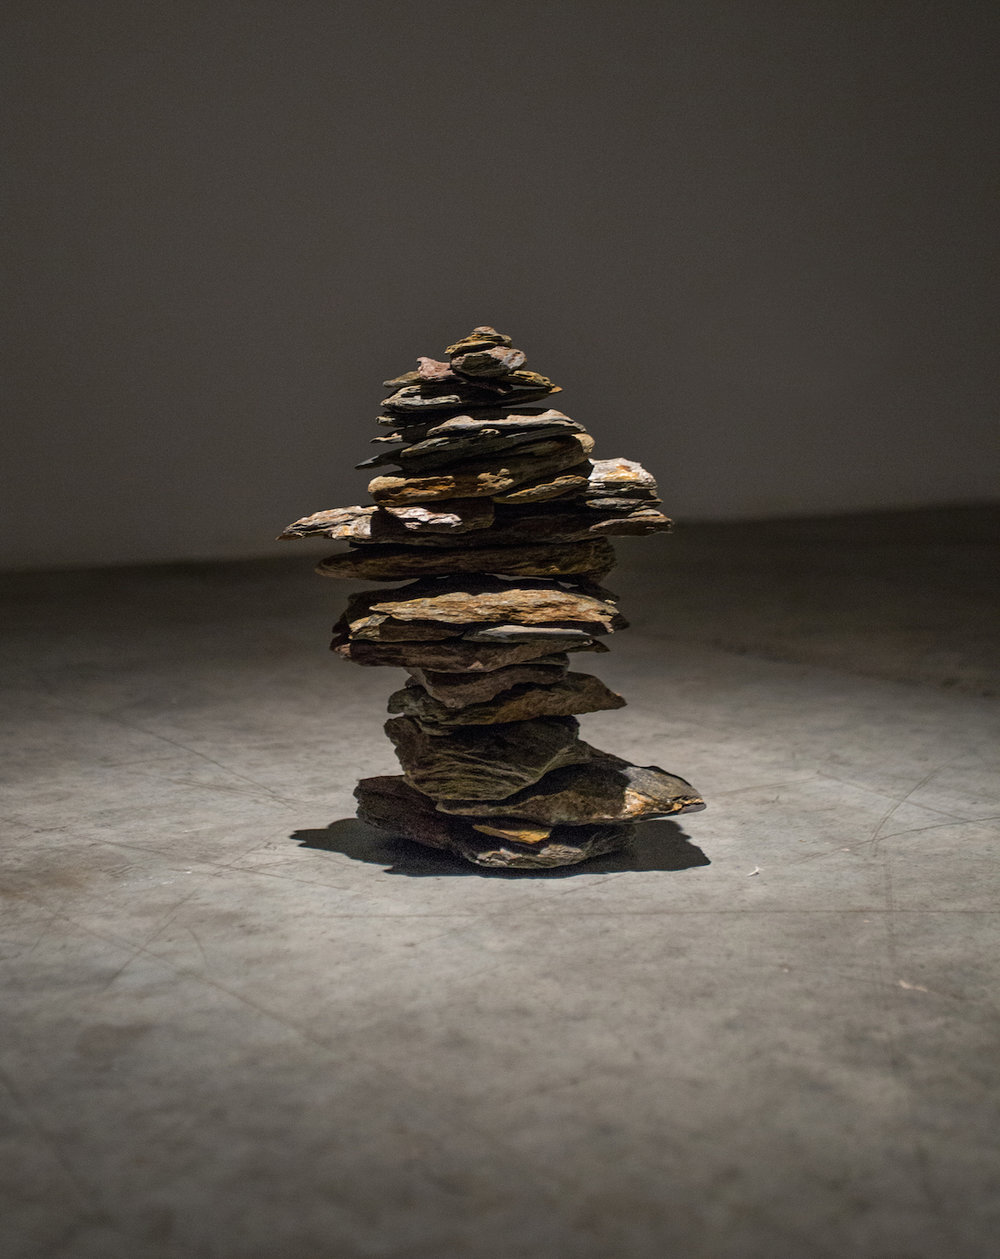 Cairn 2014 Foliated metamorphic rock (Phyllite), 43 pieces 28 x 20 x 20 cm